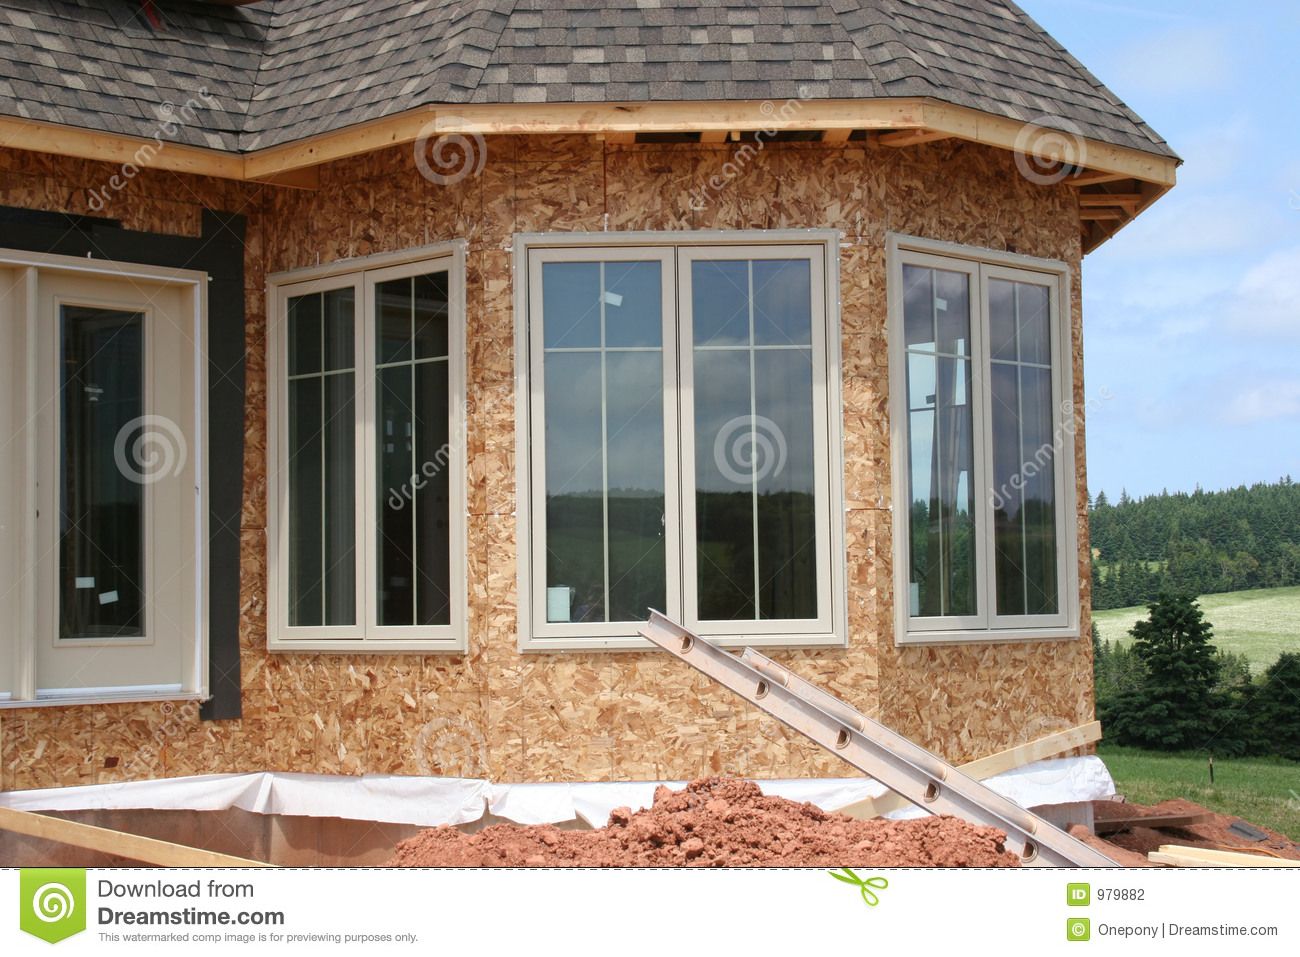 Stock Photography New Windows Exterior Image979882 on house interior windows